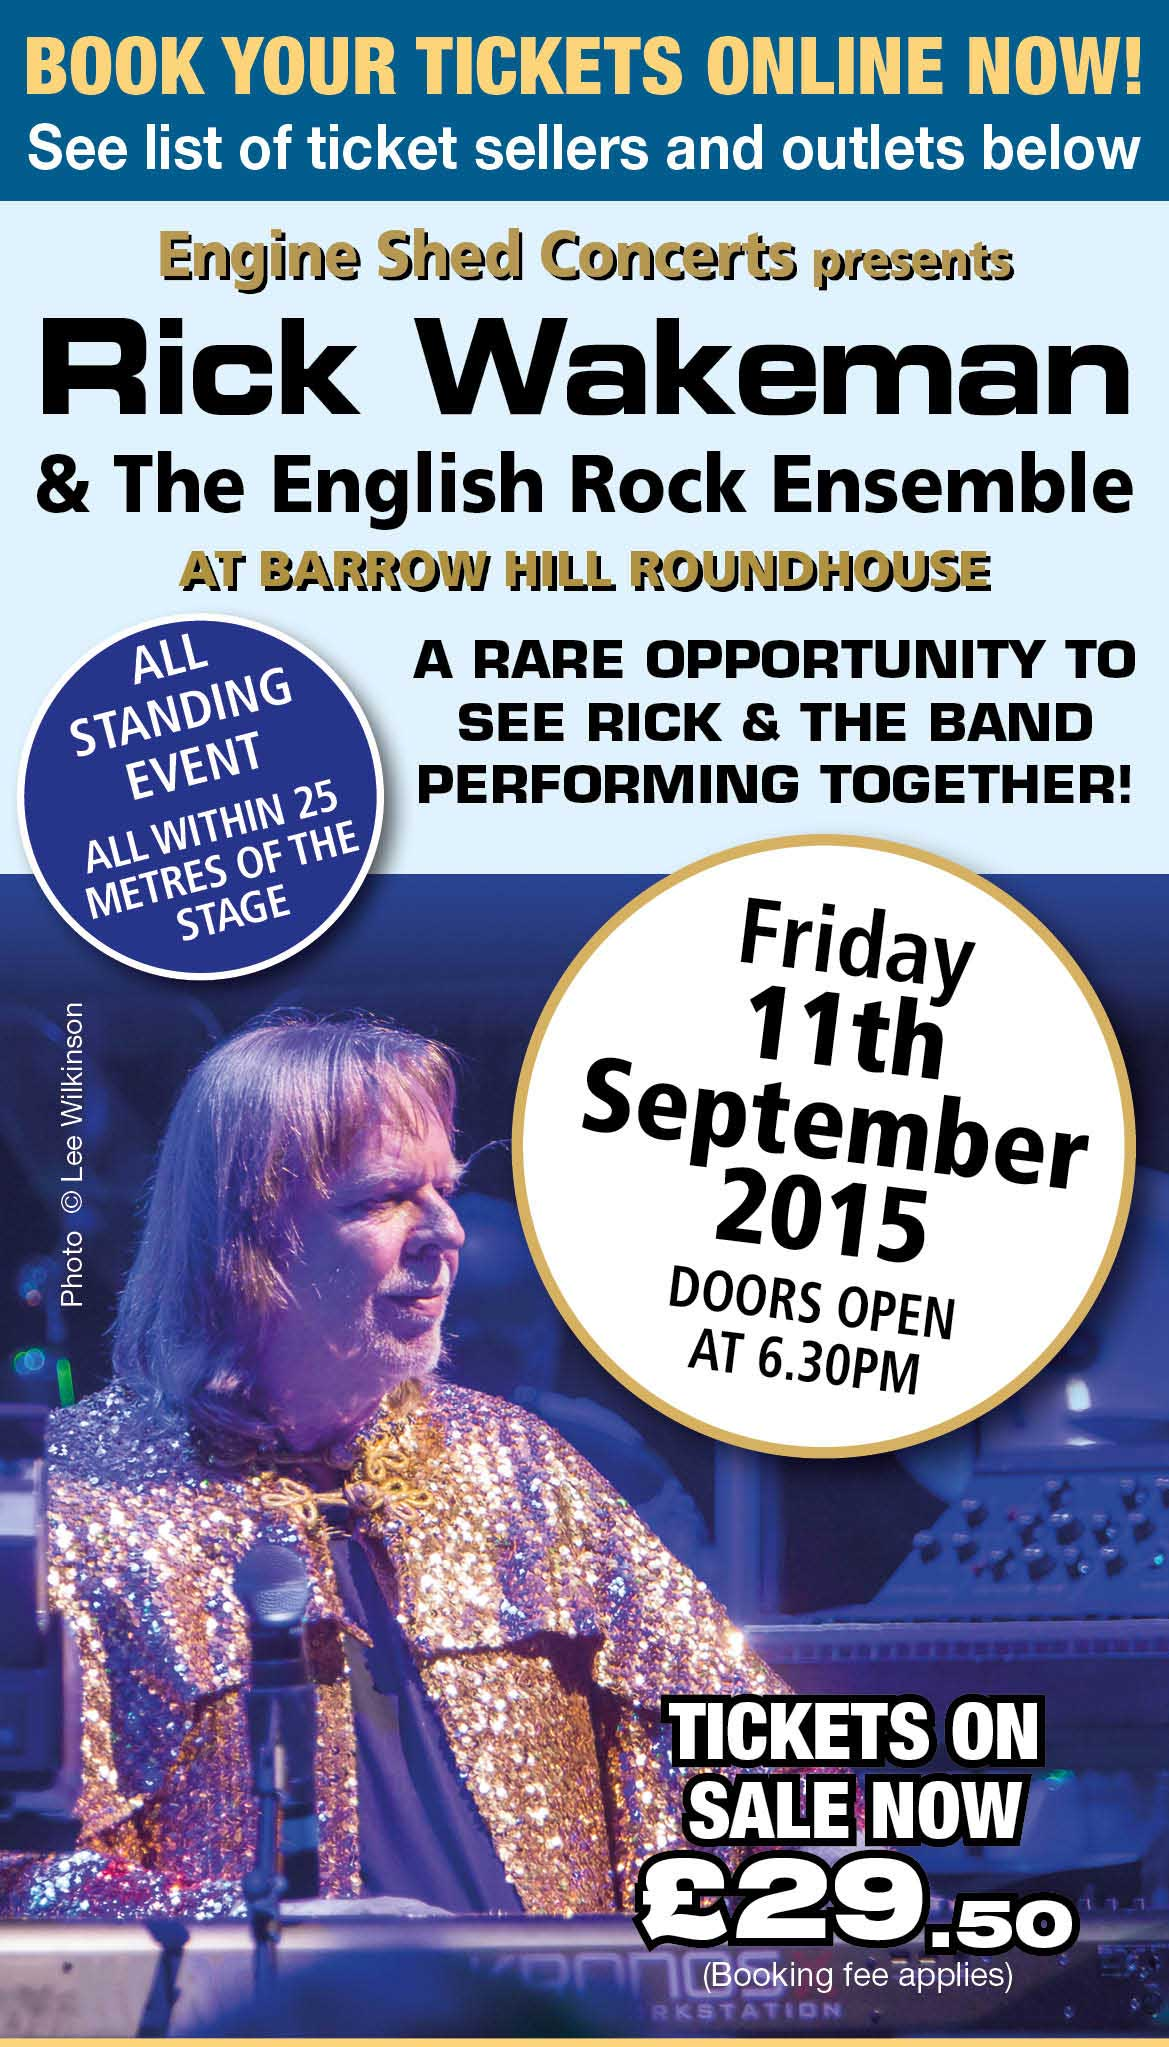 Rick Wakeman live in concert, Music event at Barrow Hill Roundhouse, Chesterfield, Derbyshire